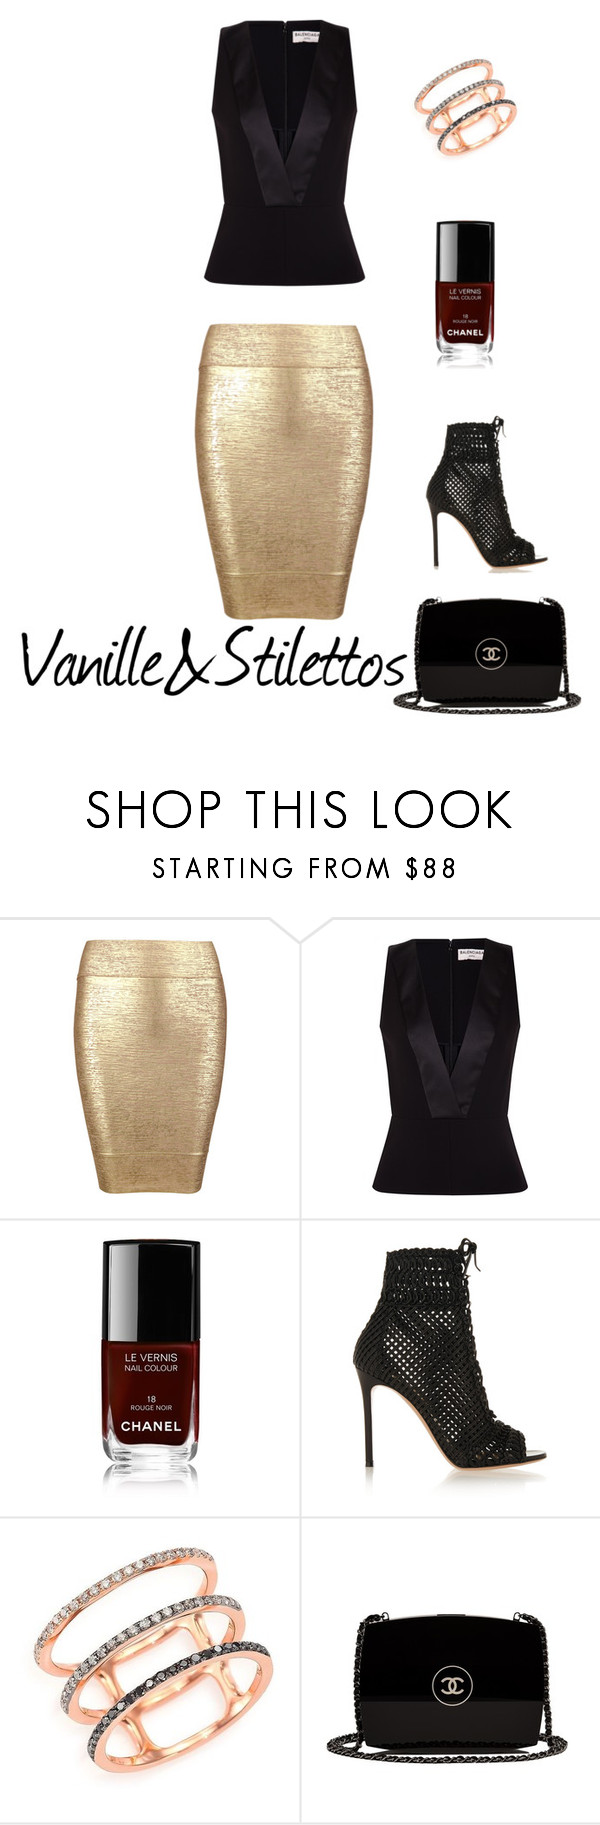 how to wear sequin skirt by laure-assany on Polyvore featuring mode, Balenciaga, Posh Girl, Gianvito Rossi, Chanel and EF Collection